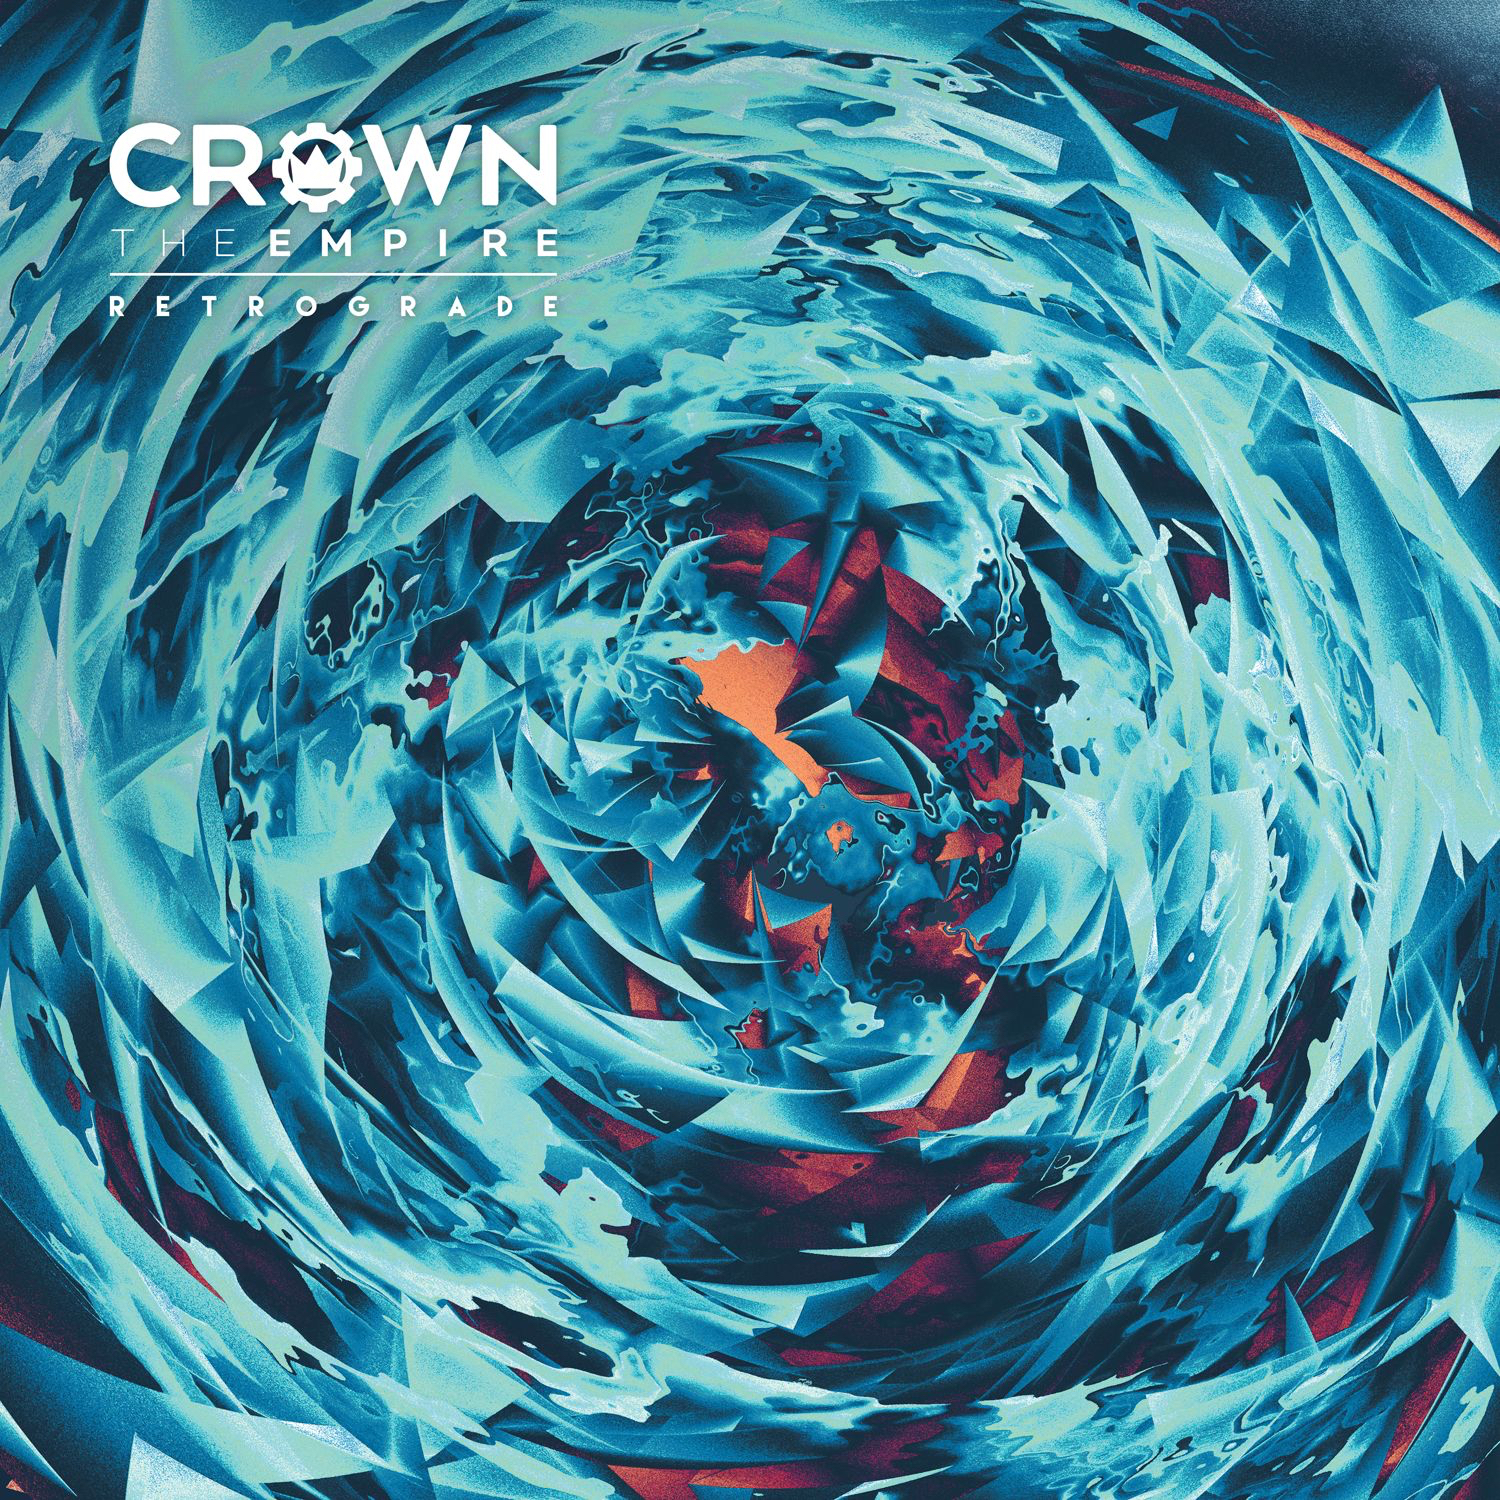 Crown The Empire - Retrograde (2016) » CORE RADIO!